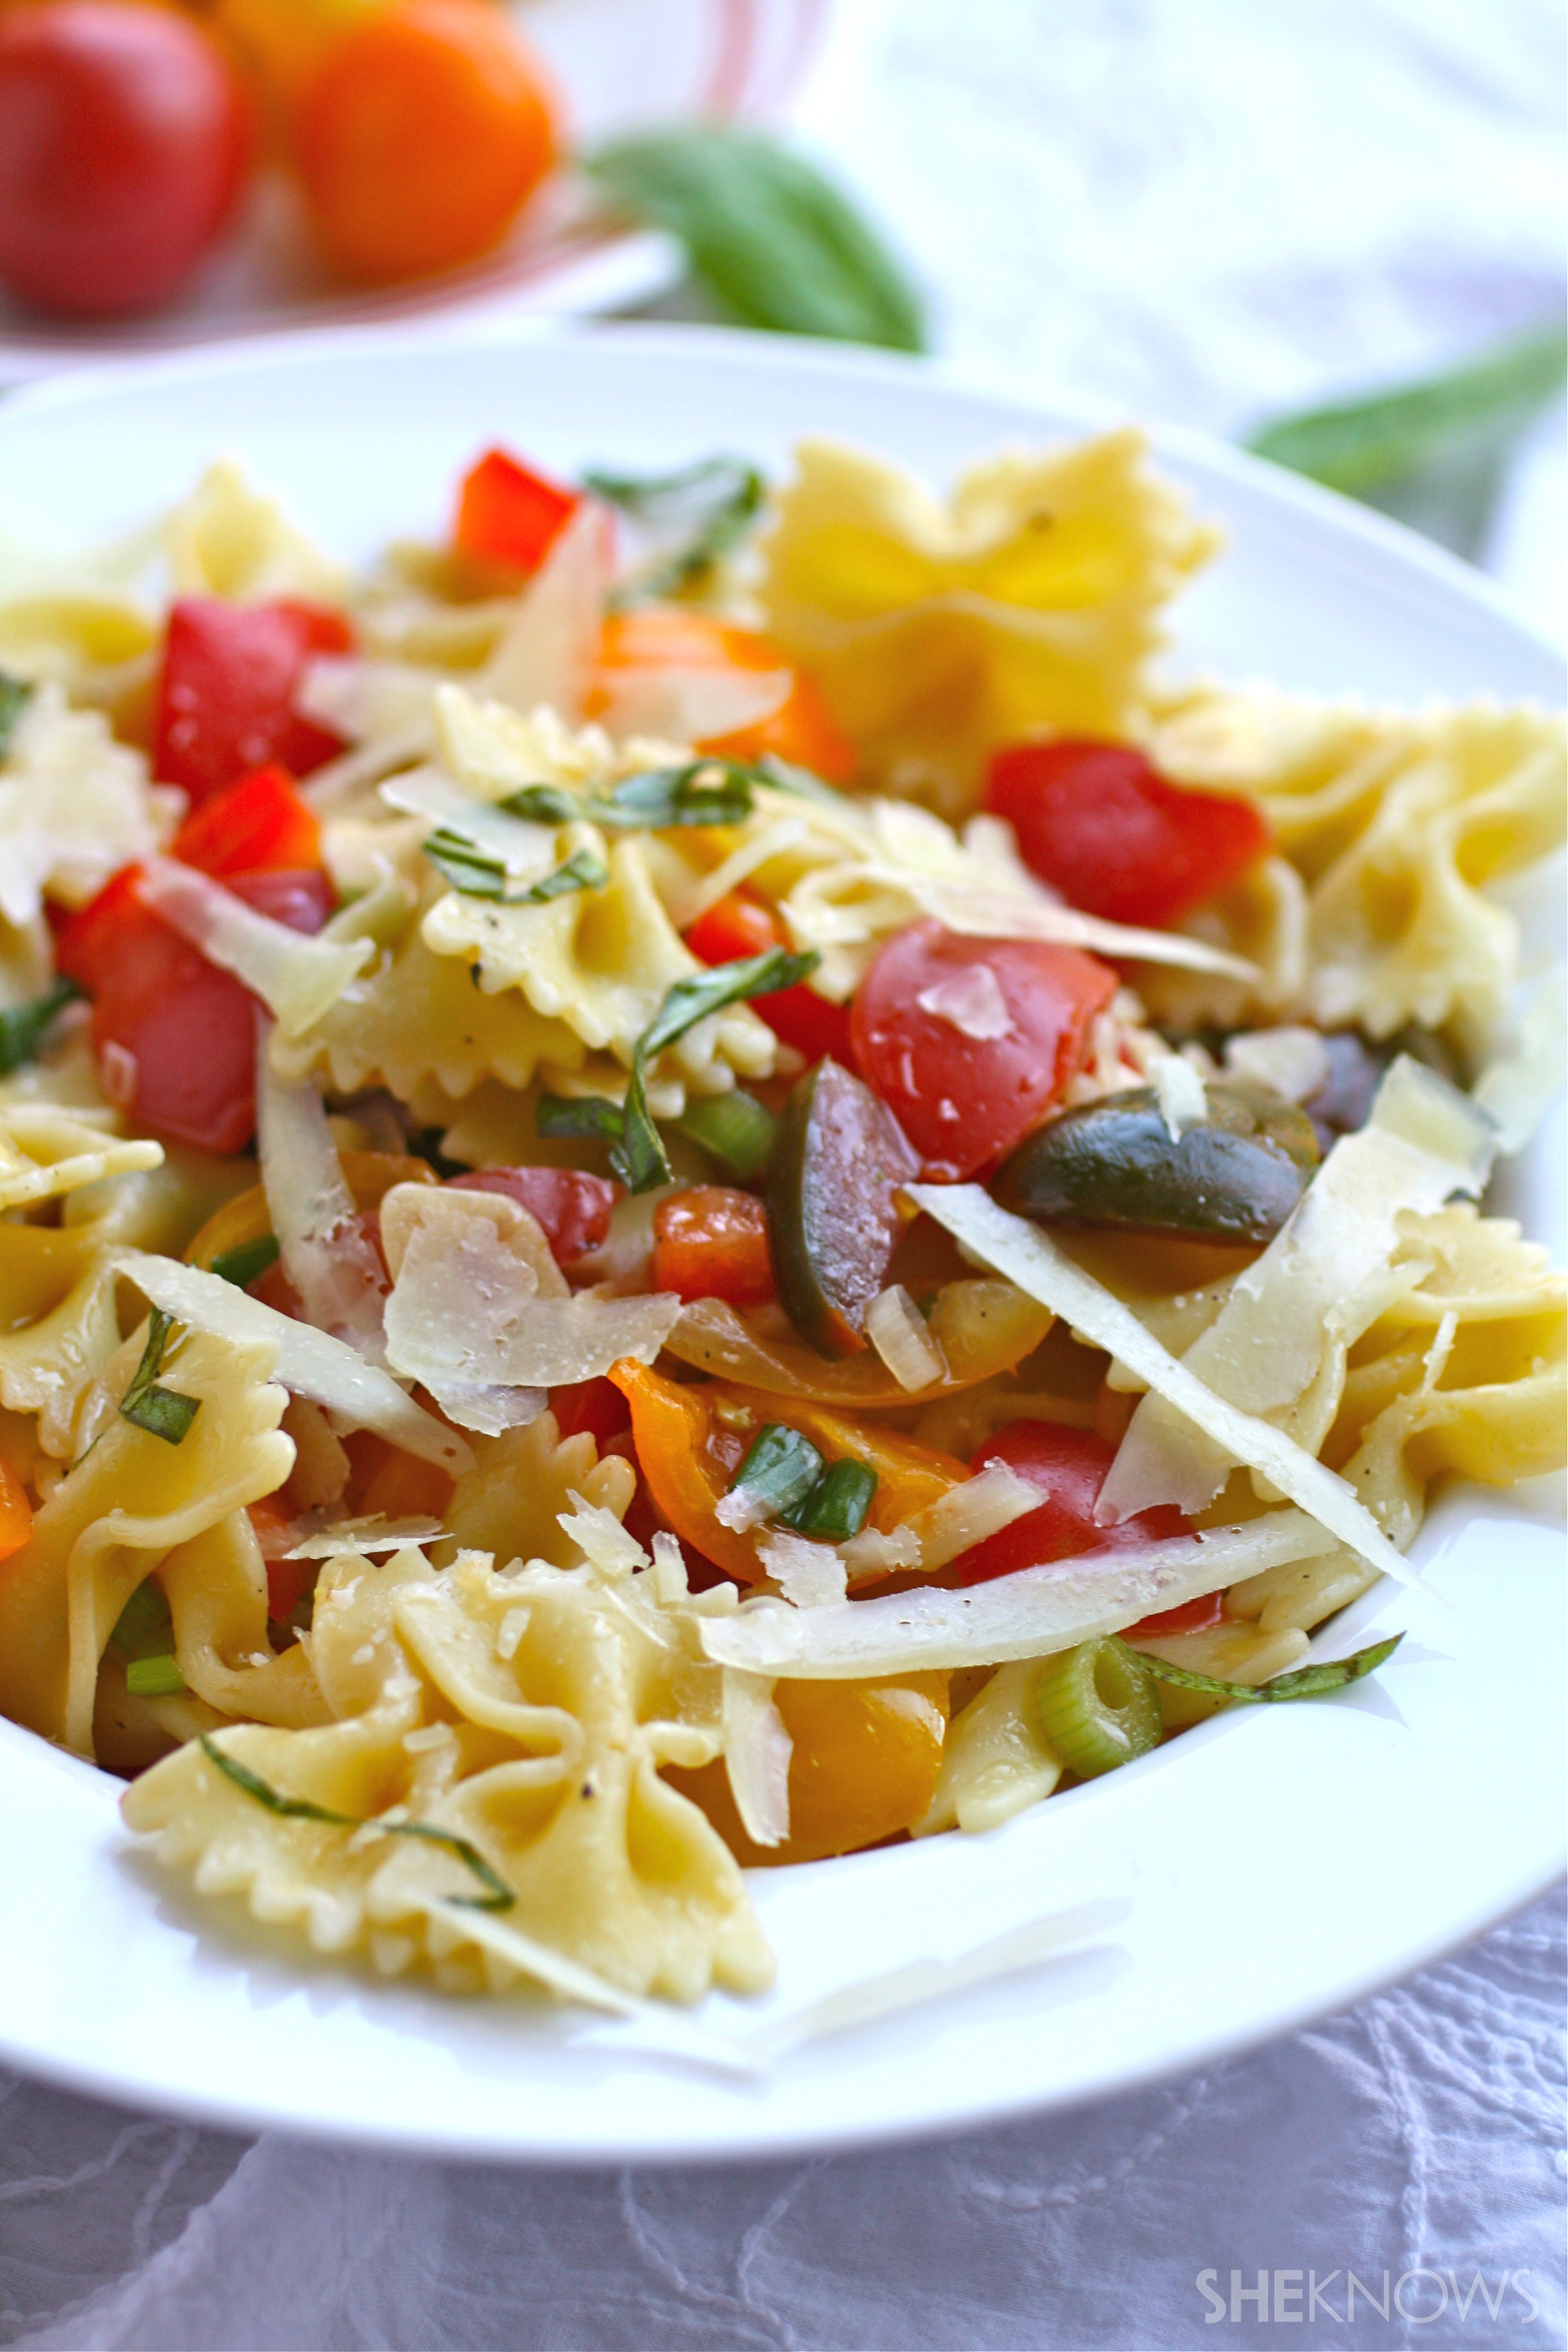 Pasta with fresh, no-cook sauce